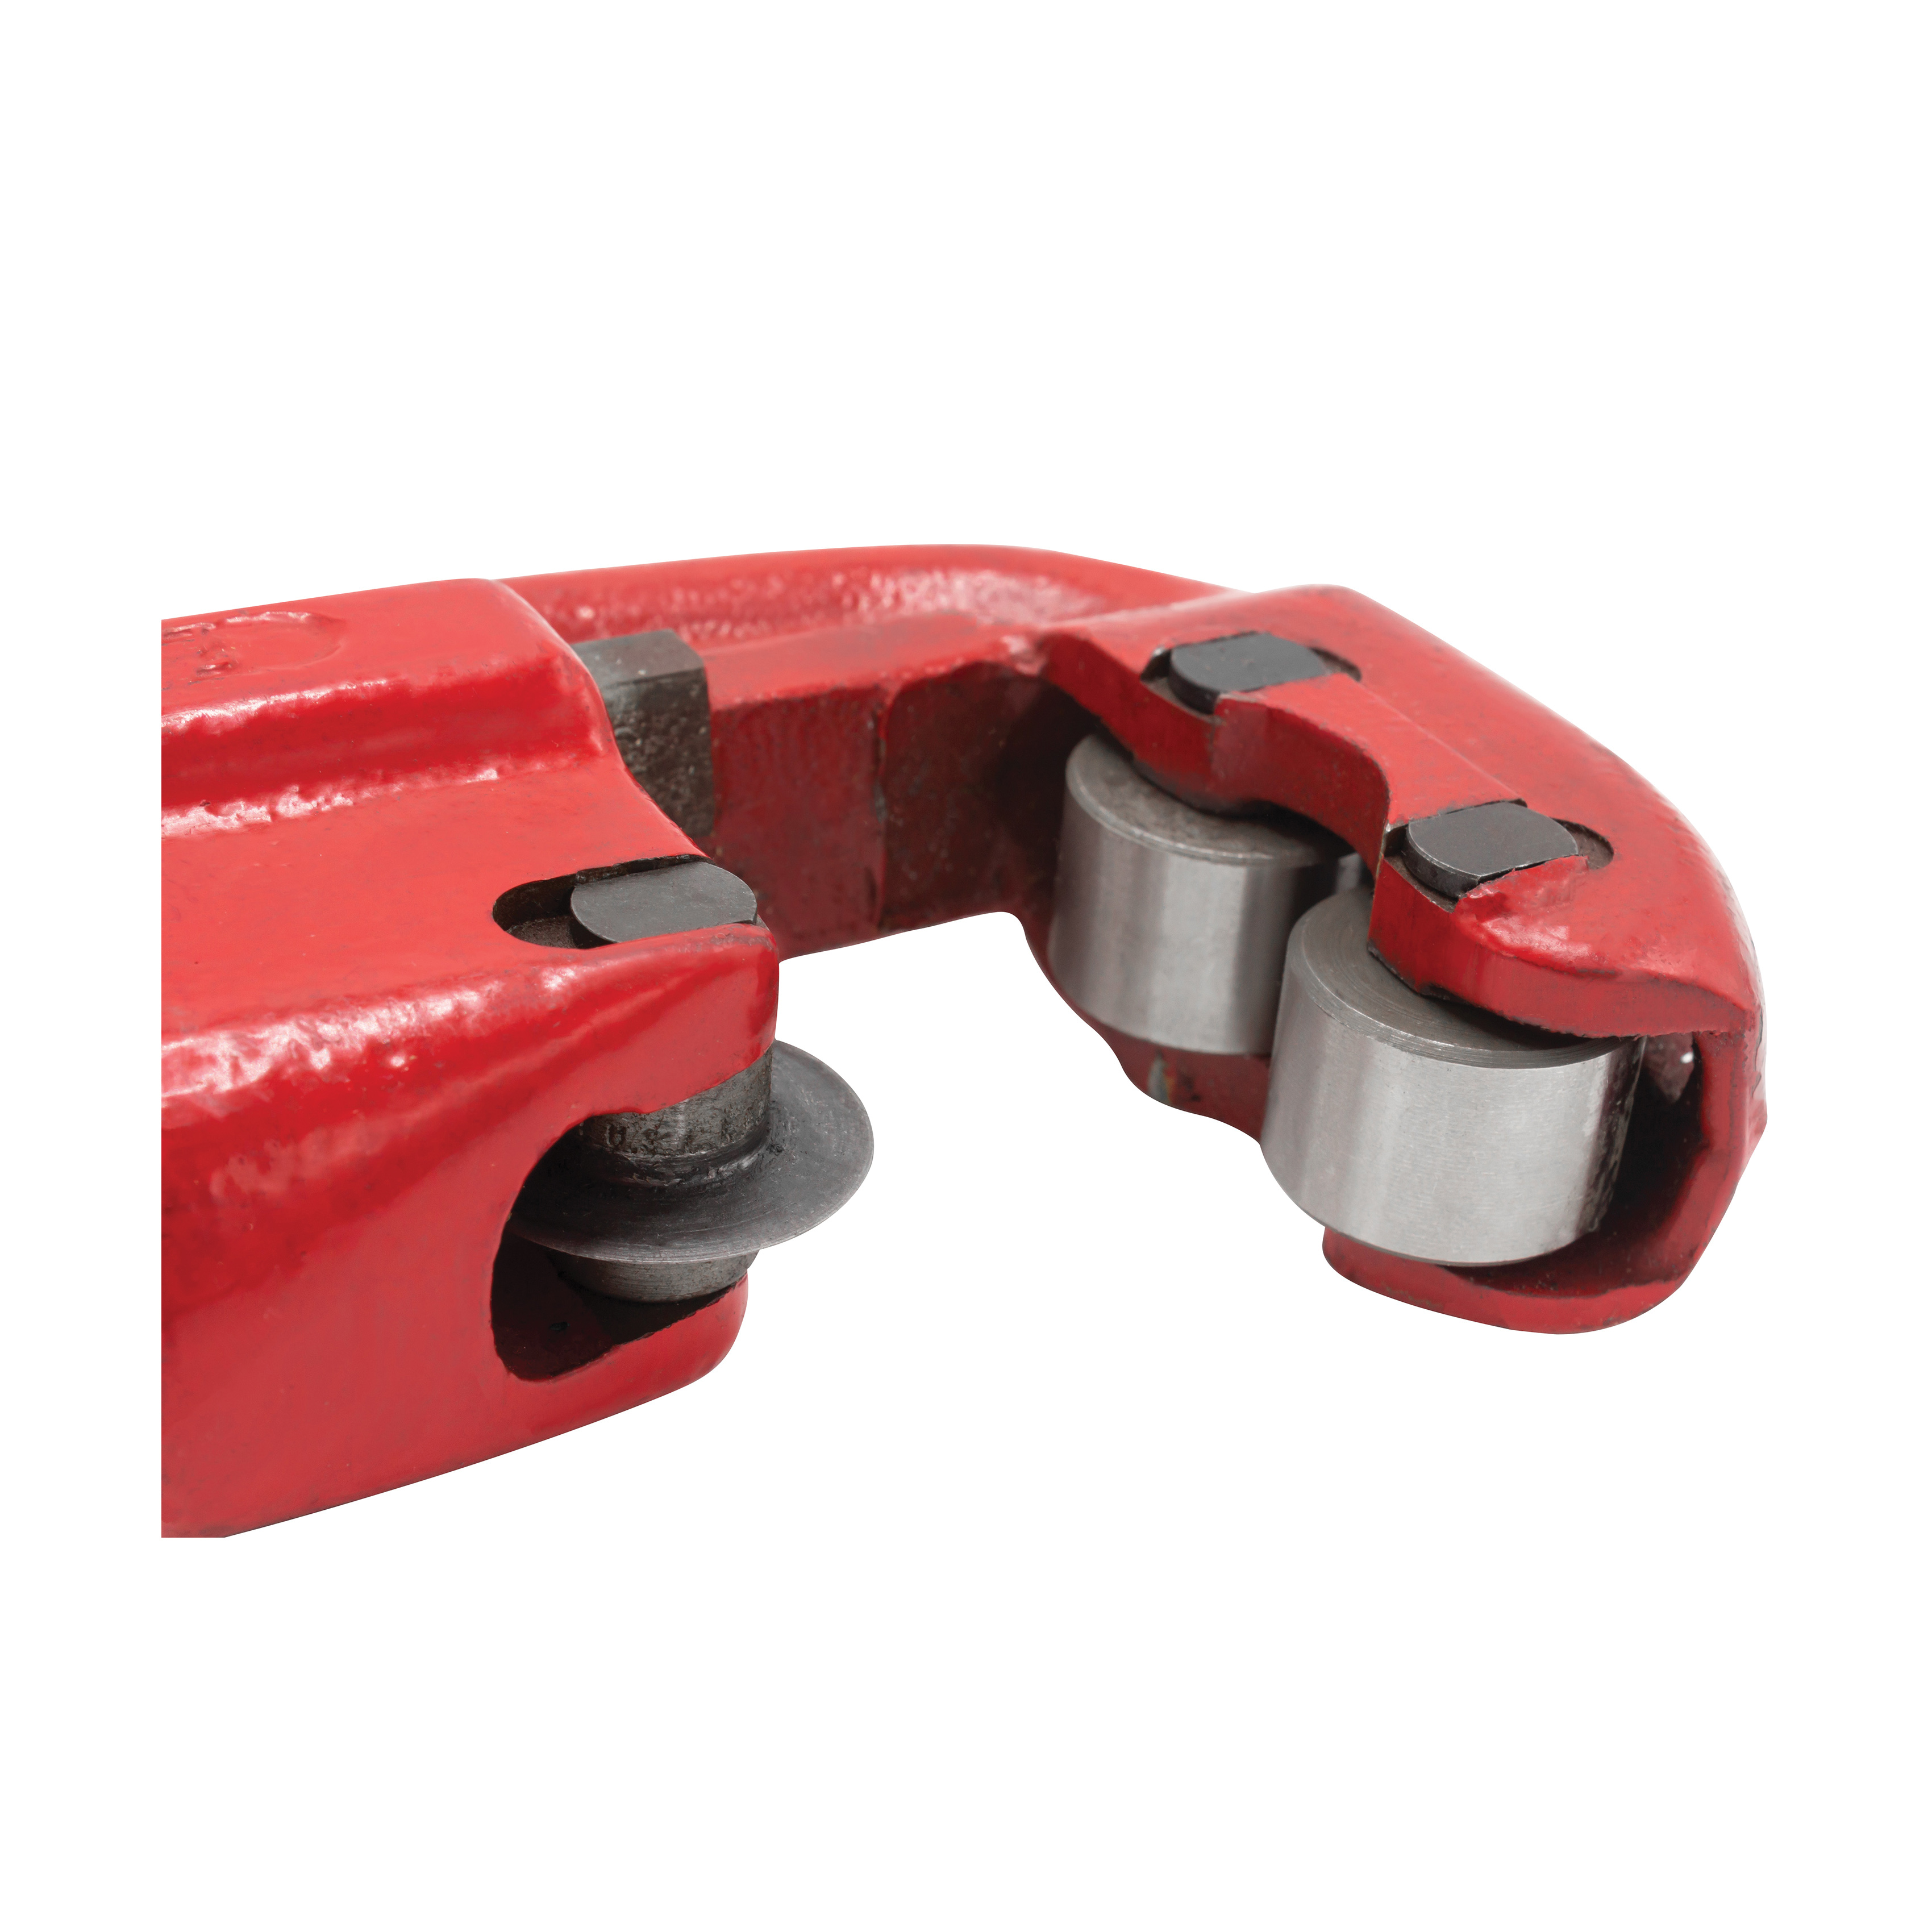 Reed 03320 1-Wheel Pipe Cutter, 1/8 to 2 in, Tool Steel Cutting Edge, Short Handle